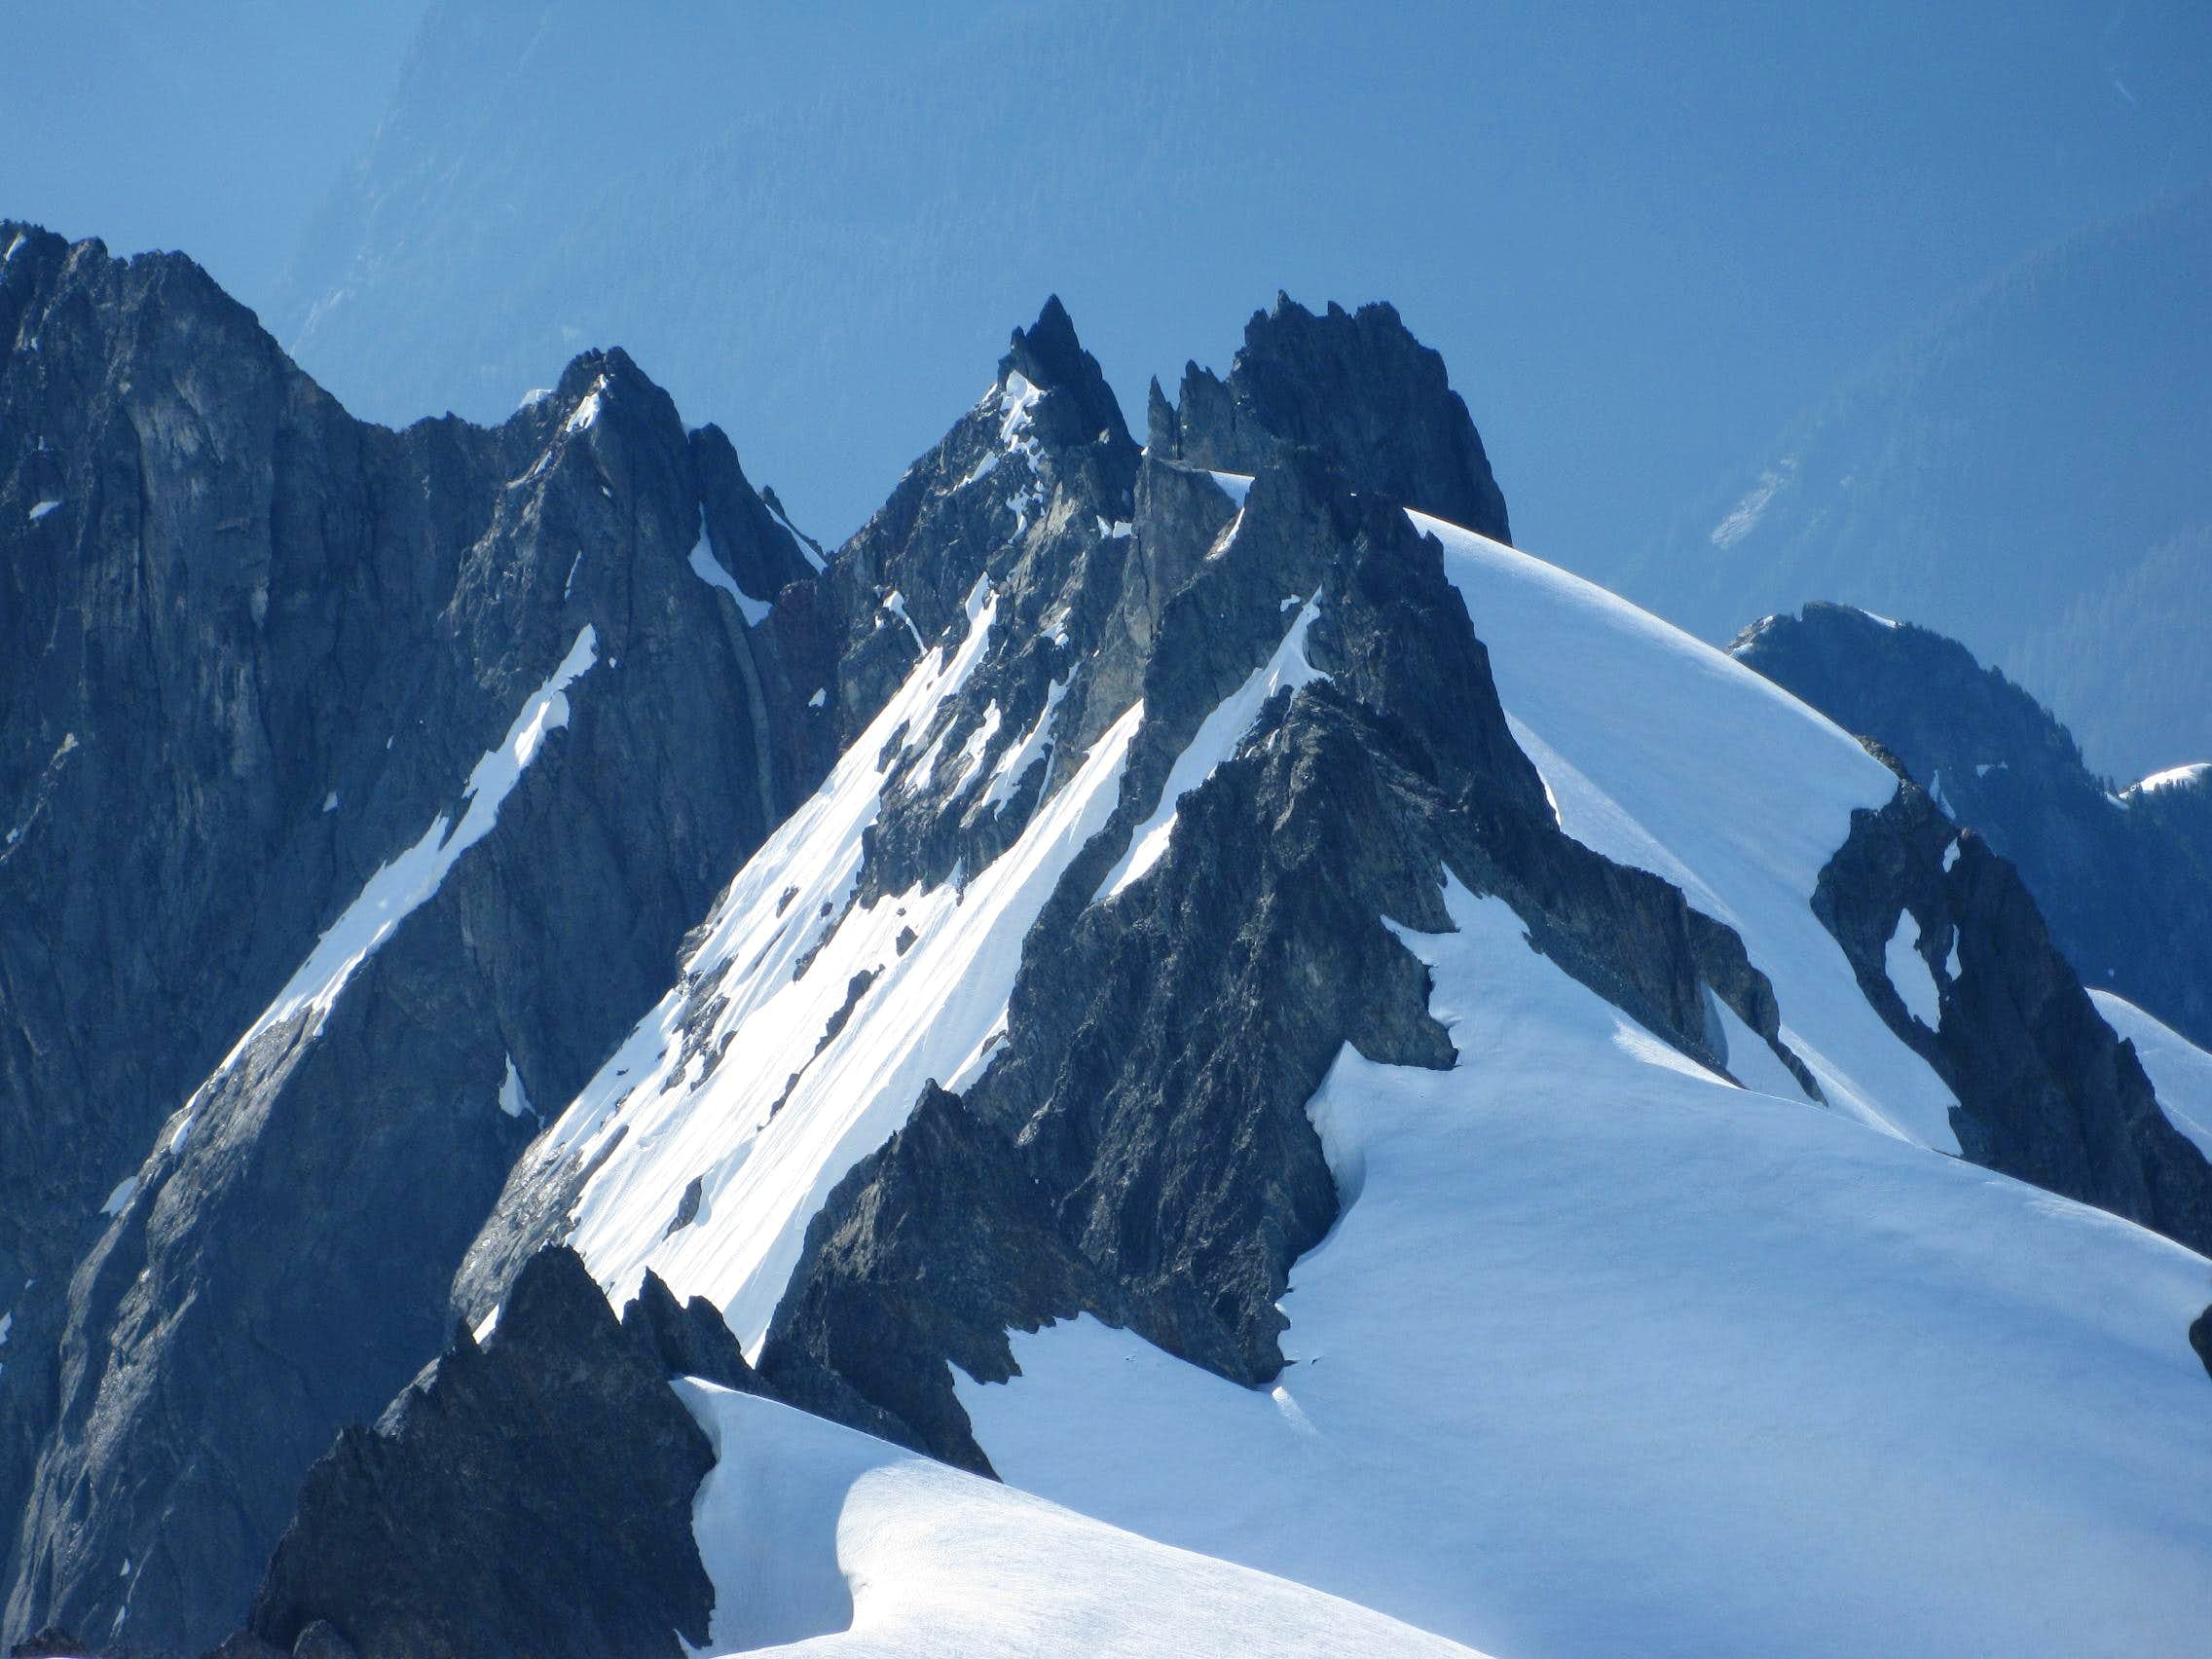 The Lower Part of Heaven: Mt. Shuksan in the North Cascades